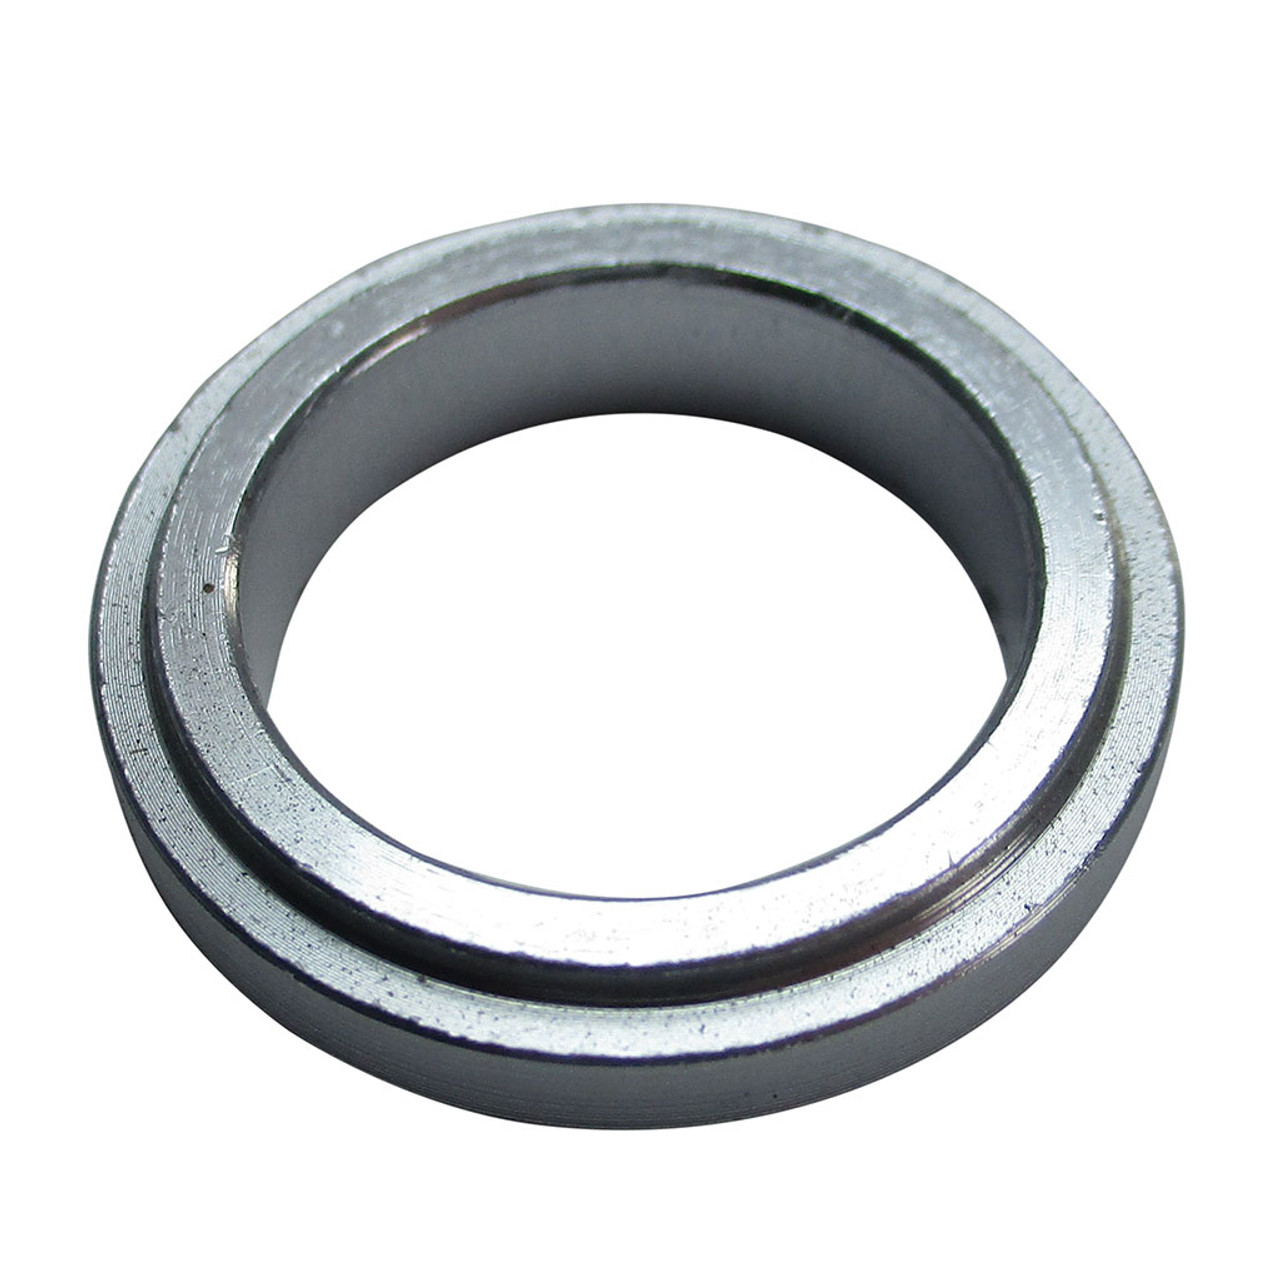 Aluminum Spindle Spacers - 17mm x 4mm